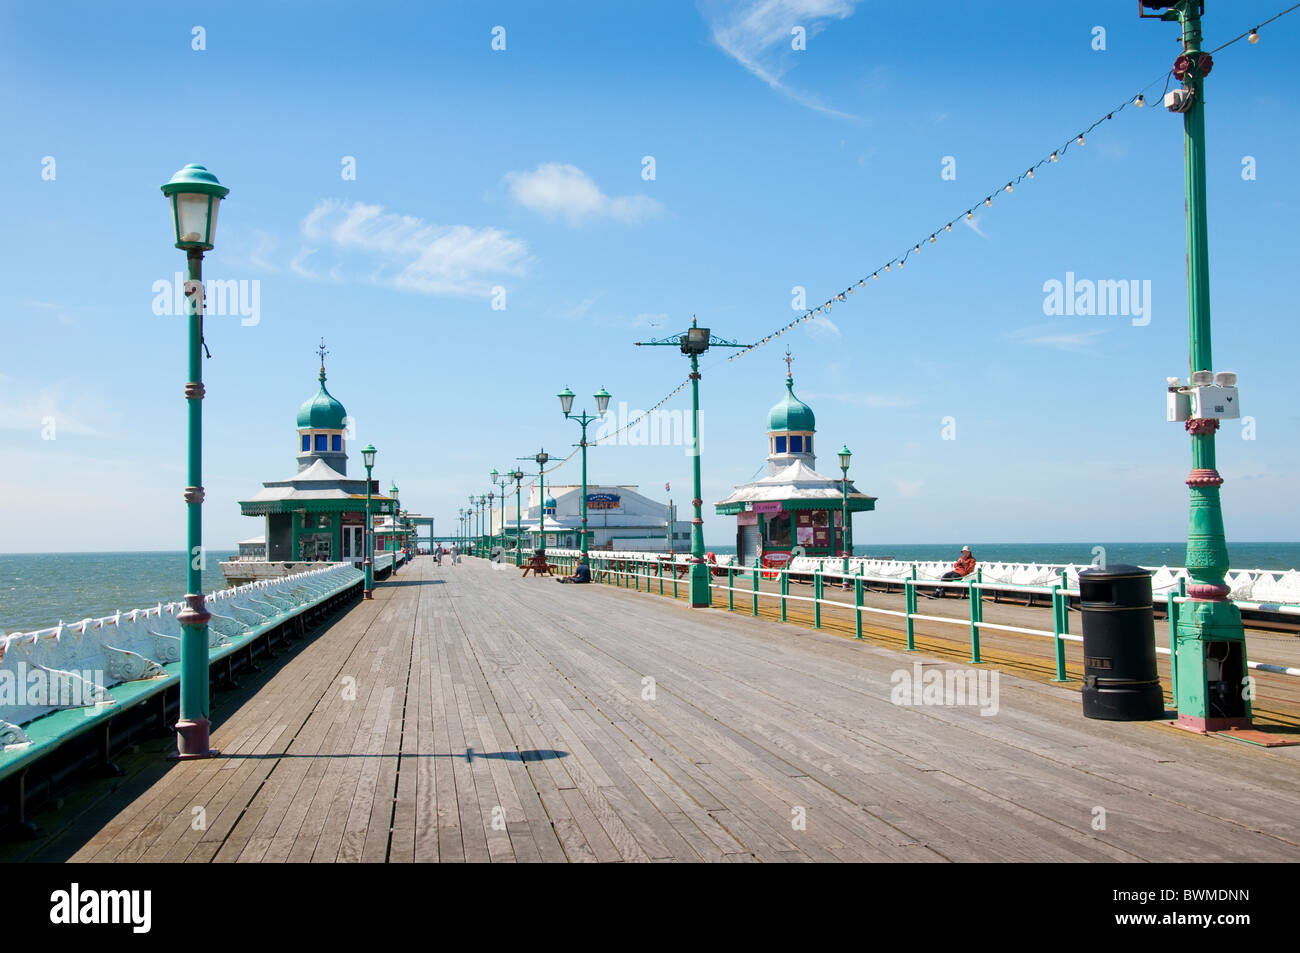 The North Pier at Blackpool on the coast of Lancashire in Northern England - Stock Image